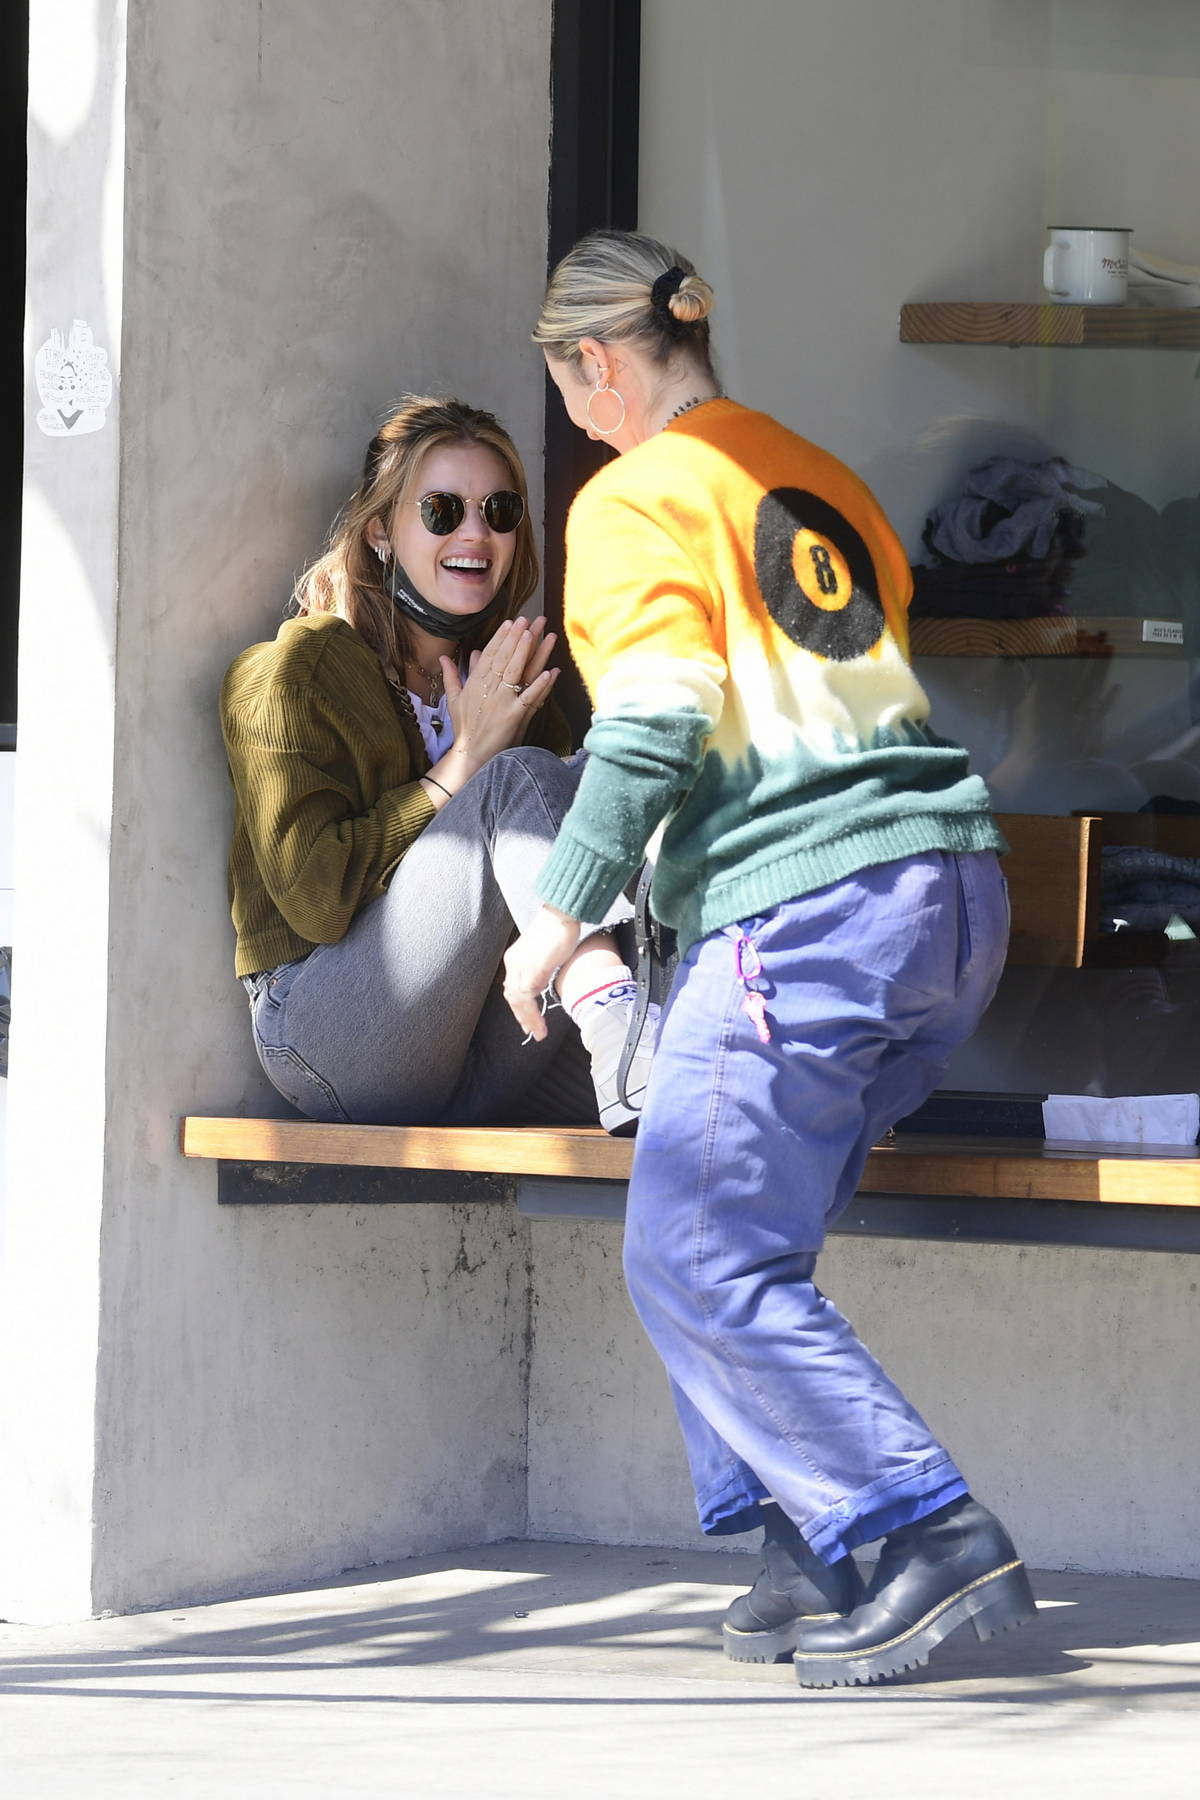 Lucy Hale looked happy while catching up with a friend over coffee in Los Angeles